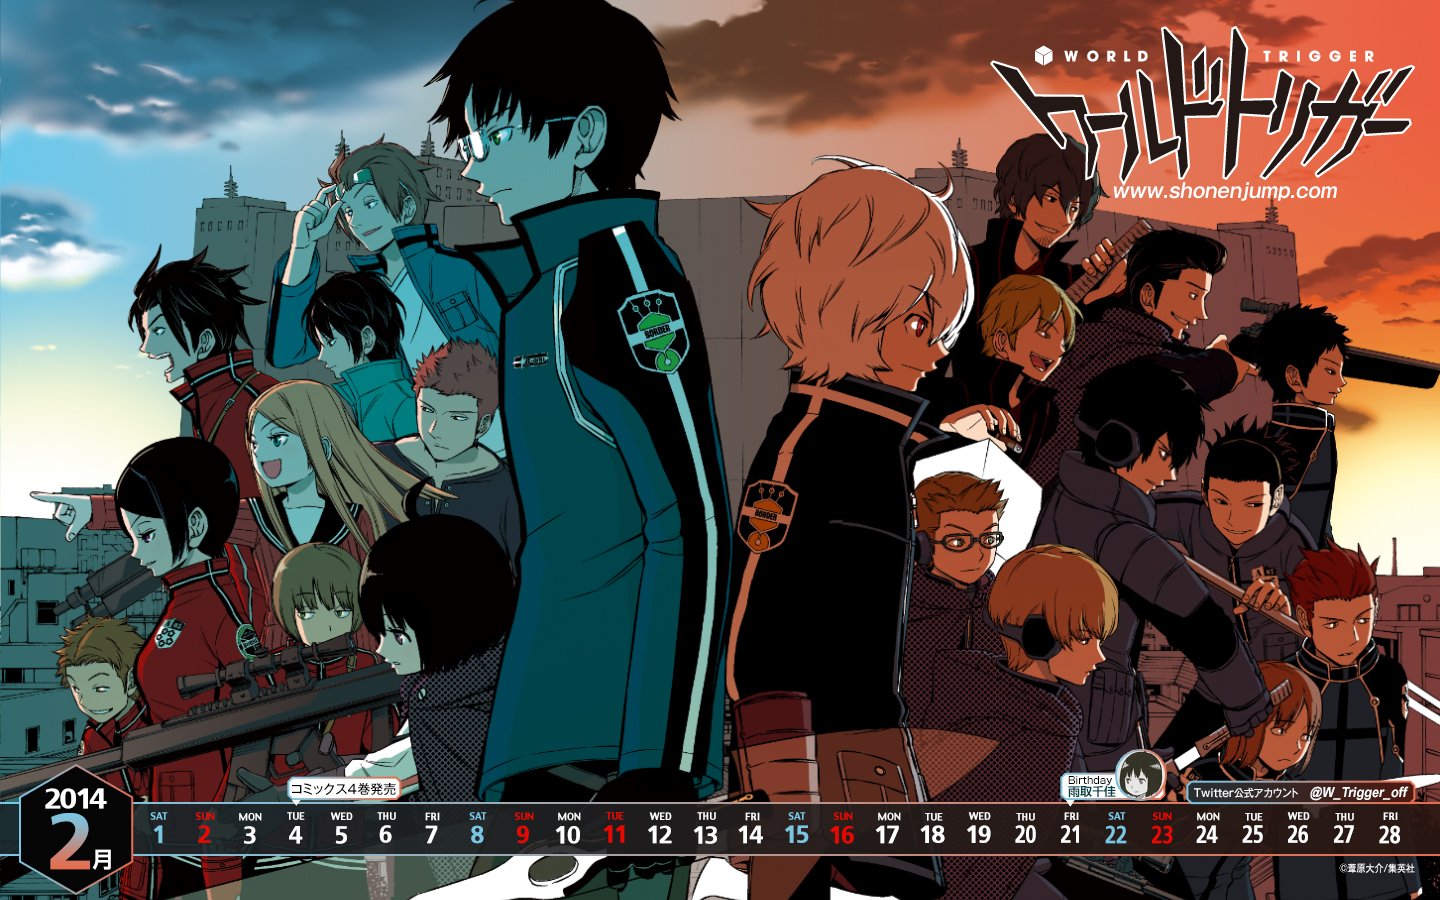 World Trigger 26 Vostfr Streaming